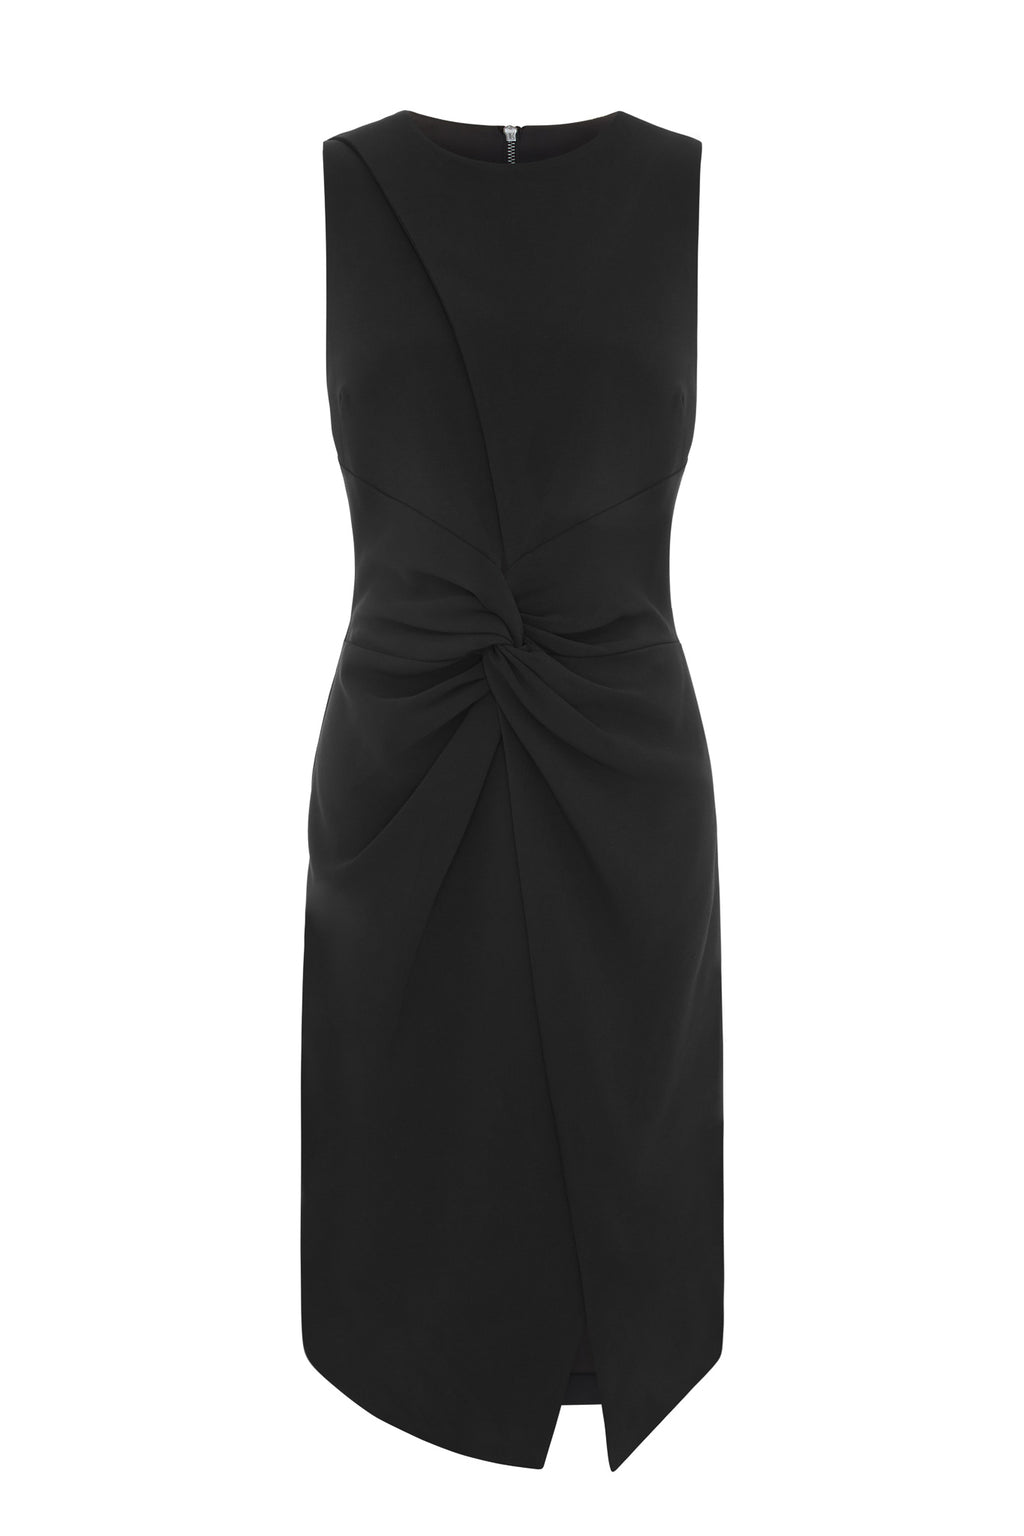 Outline Peroma Black Midi Dress